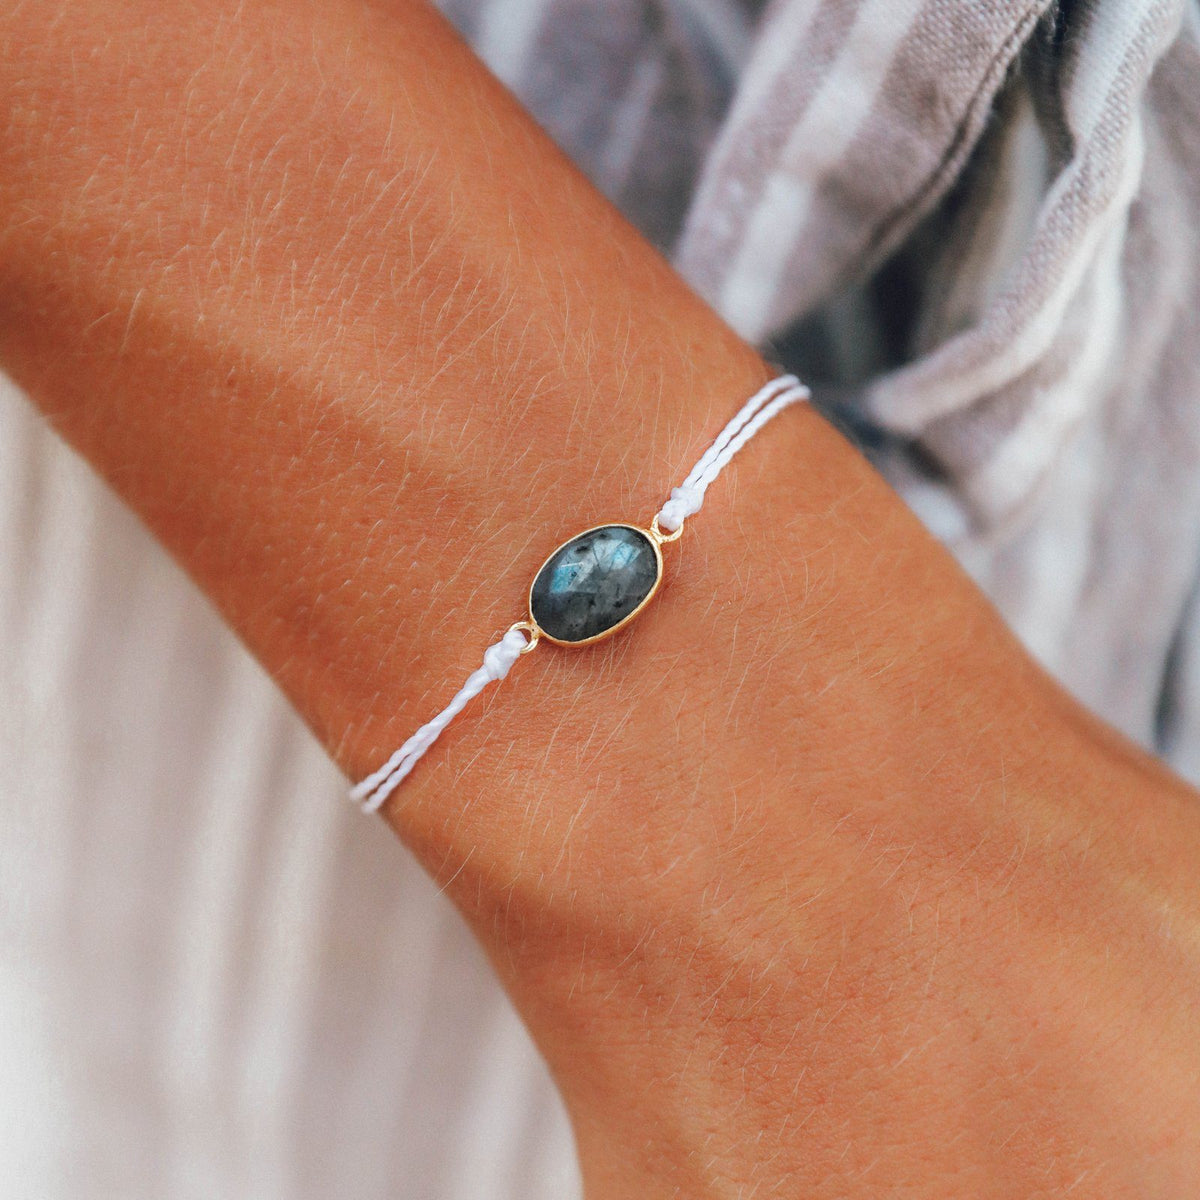 Oval Labradorite Bracelet Photo 2